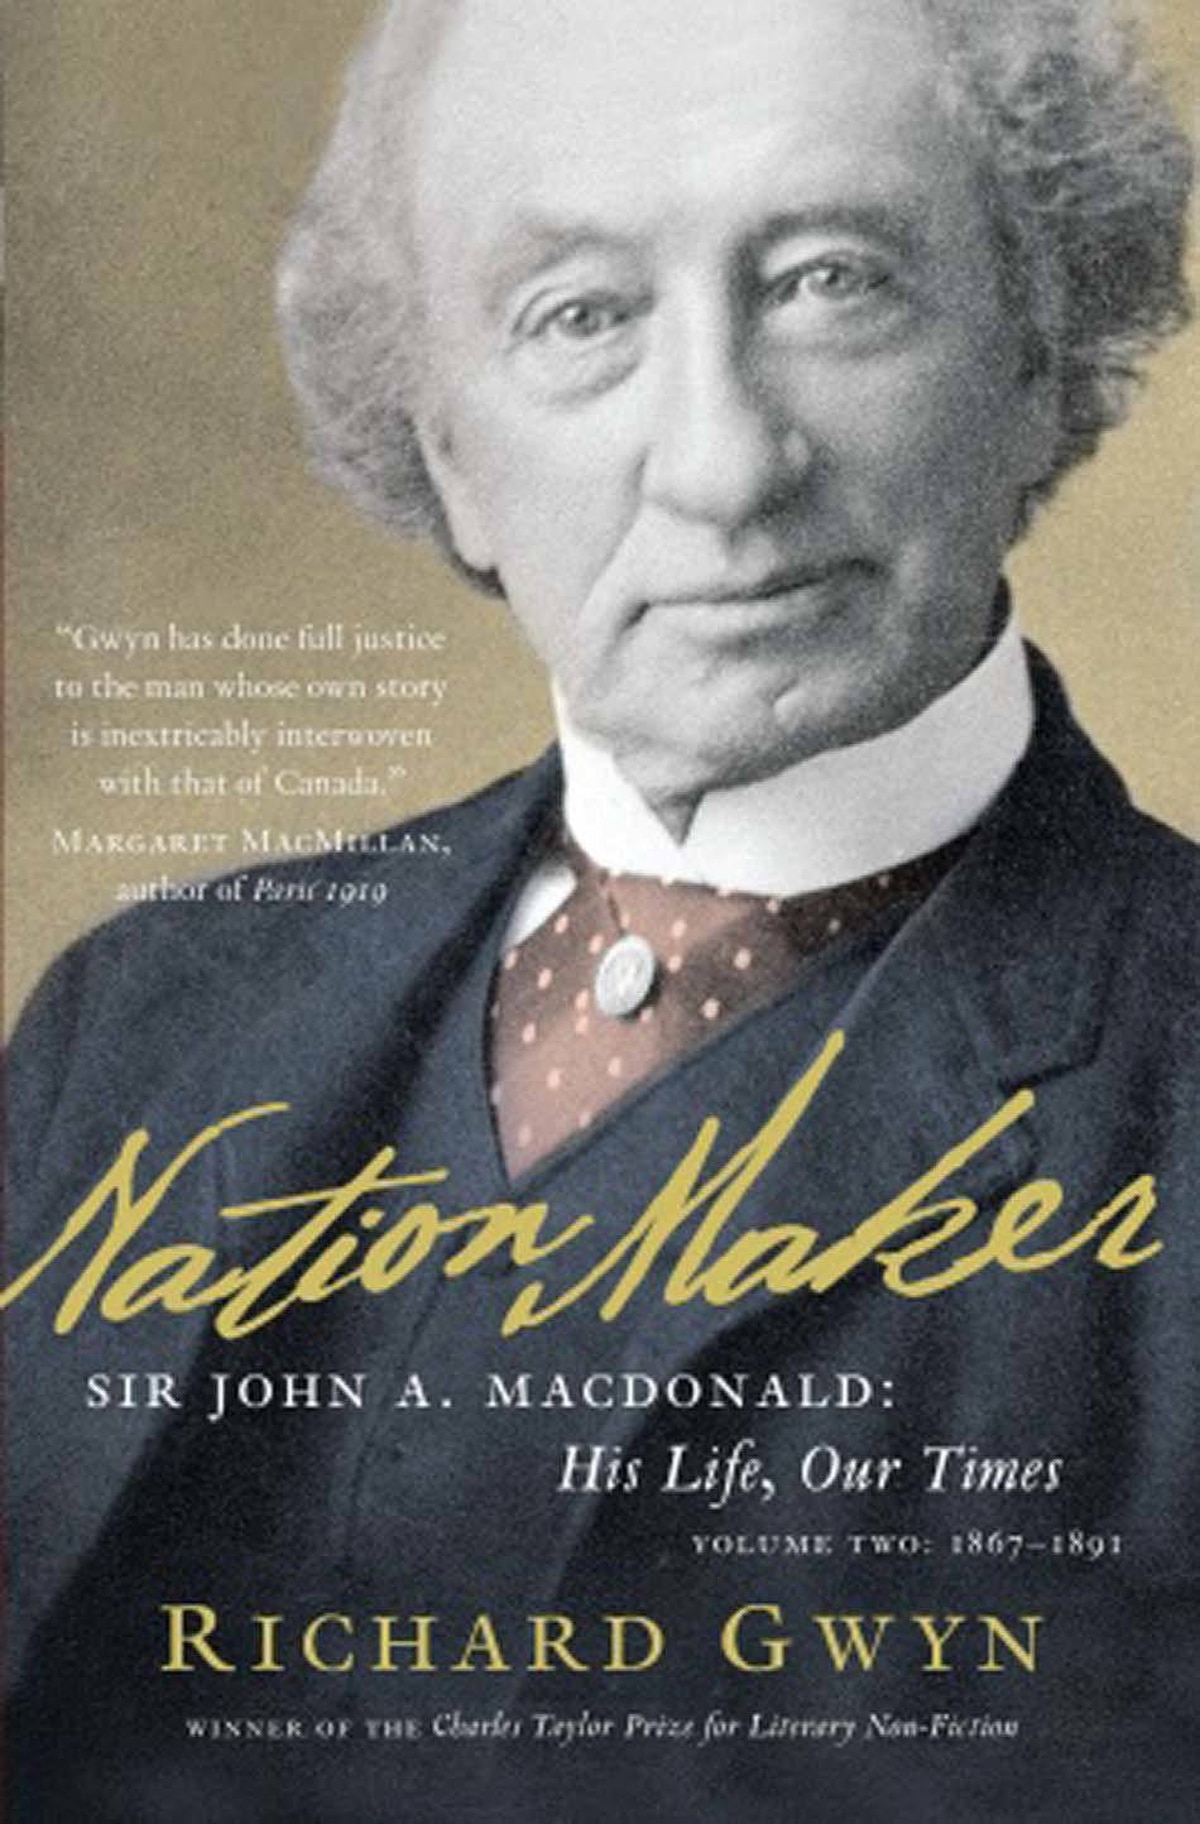 NATION MAKER Sir John A. Macdonald: His Life, Our Times, Volume Two: 1867 -1891 By Richard Gwyn (Random House Canada) The second of a two-volume, prize-winning biography covers 1867 to 1891, from just after Confederation to Macdonald's death. At its heart is the creation, against all odds, of a railway that would become the spine of the emerging country. The book is a towering achievement, a glittering career-capper, and may prove impossible to beat. – Ken McGoogan